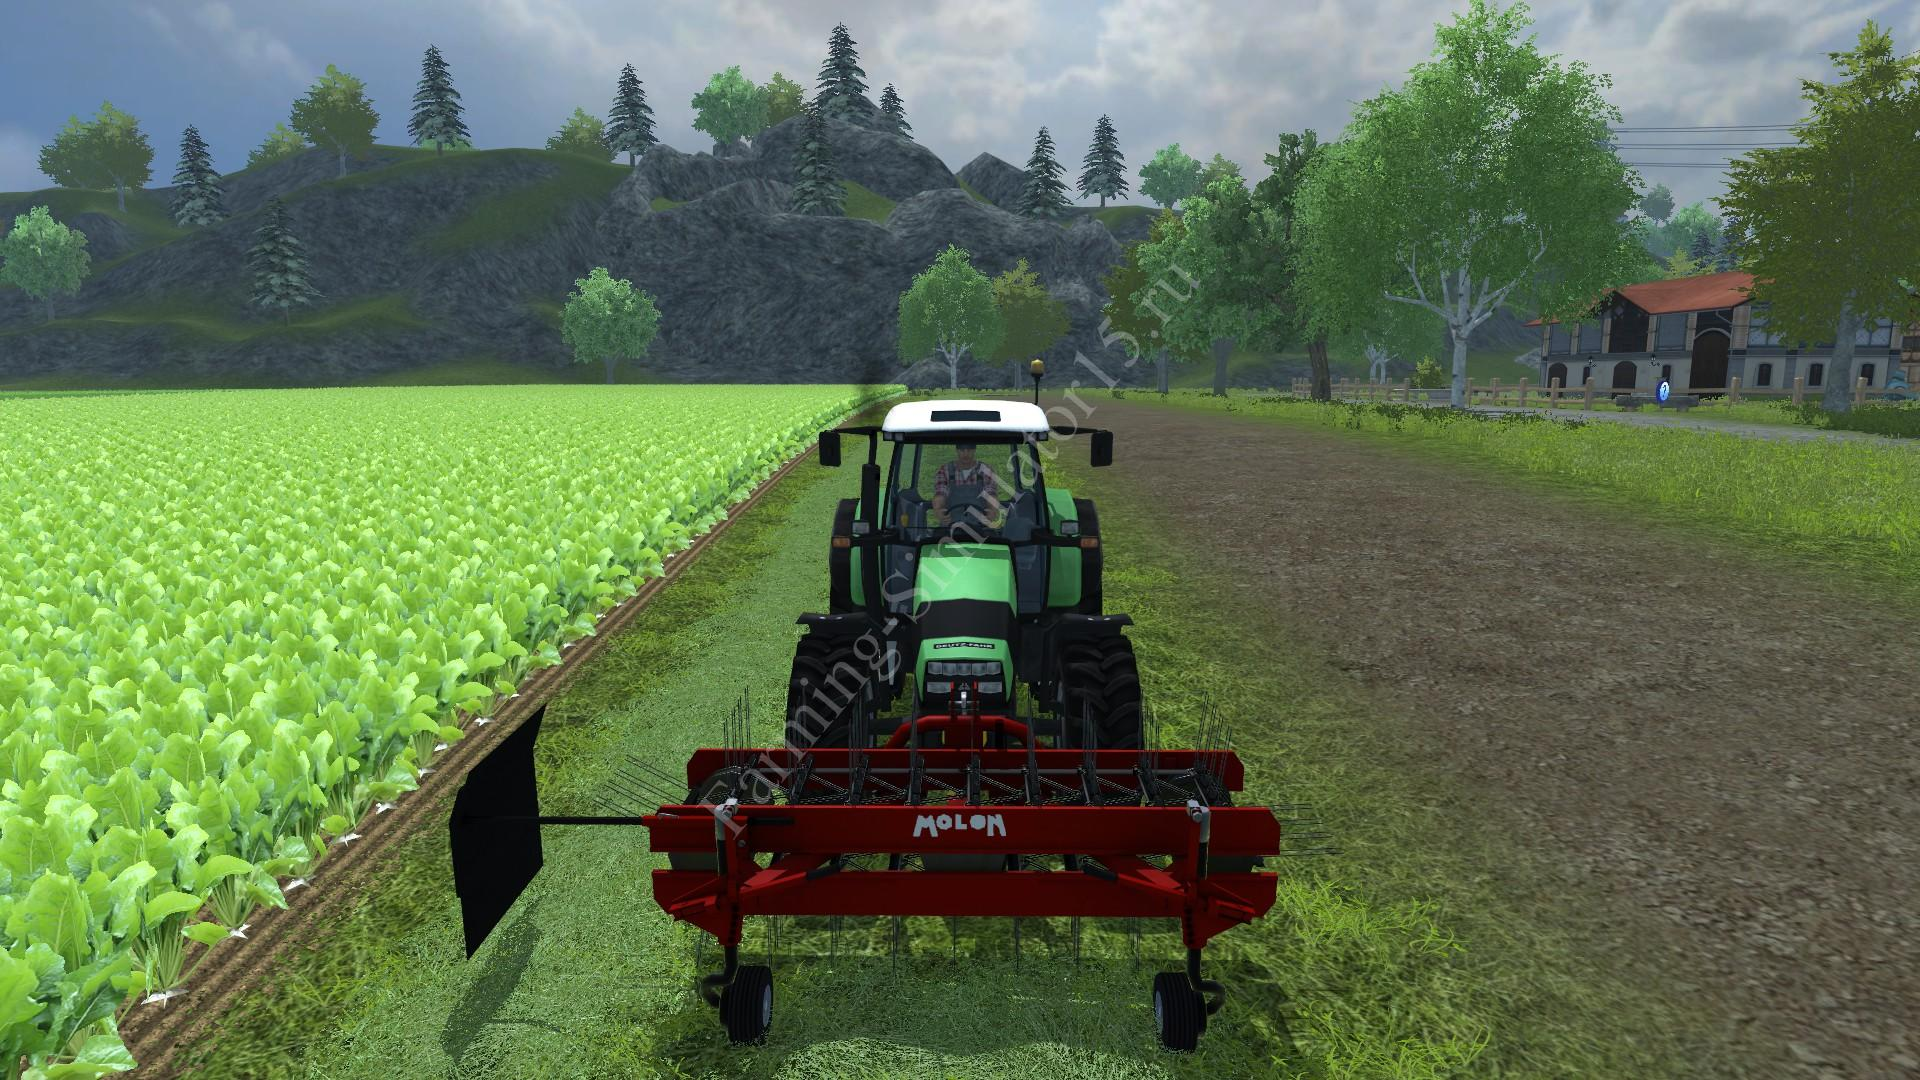 Мод ворошилки Molon 260 5D v 1.1 Farming Simulator 2013, Farming Simulator 13